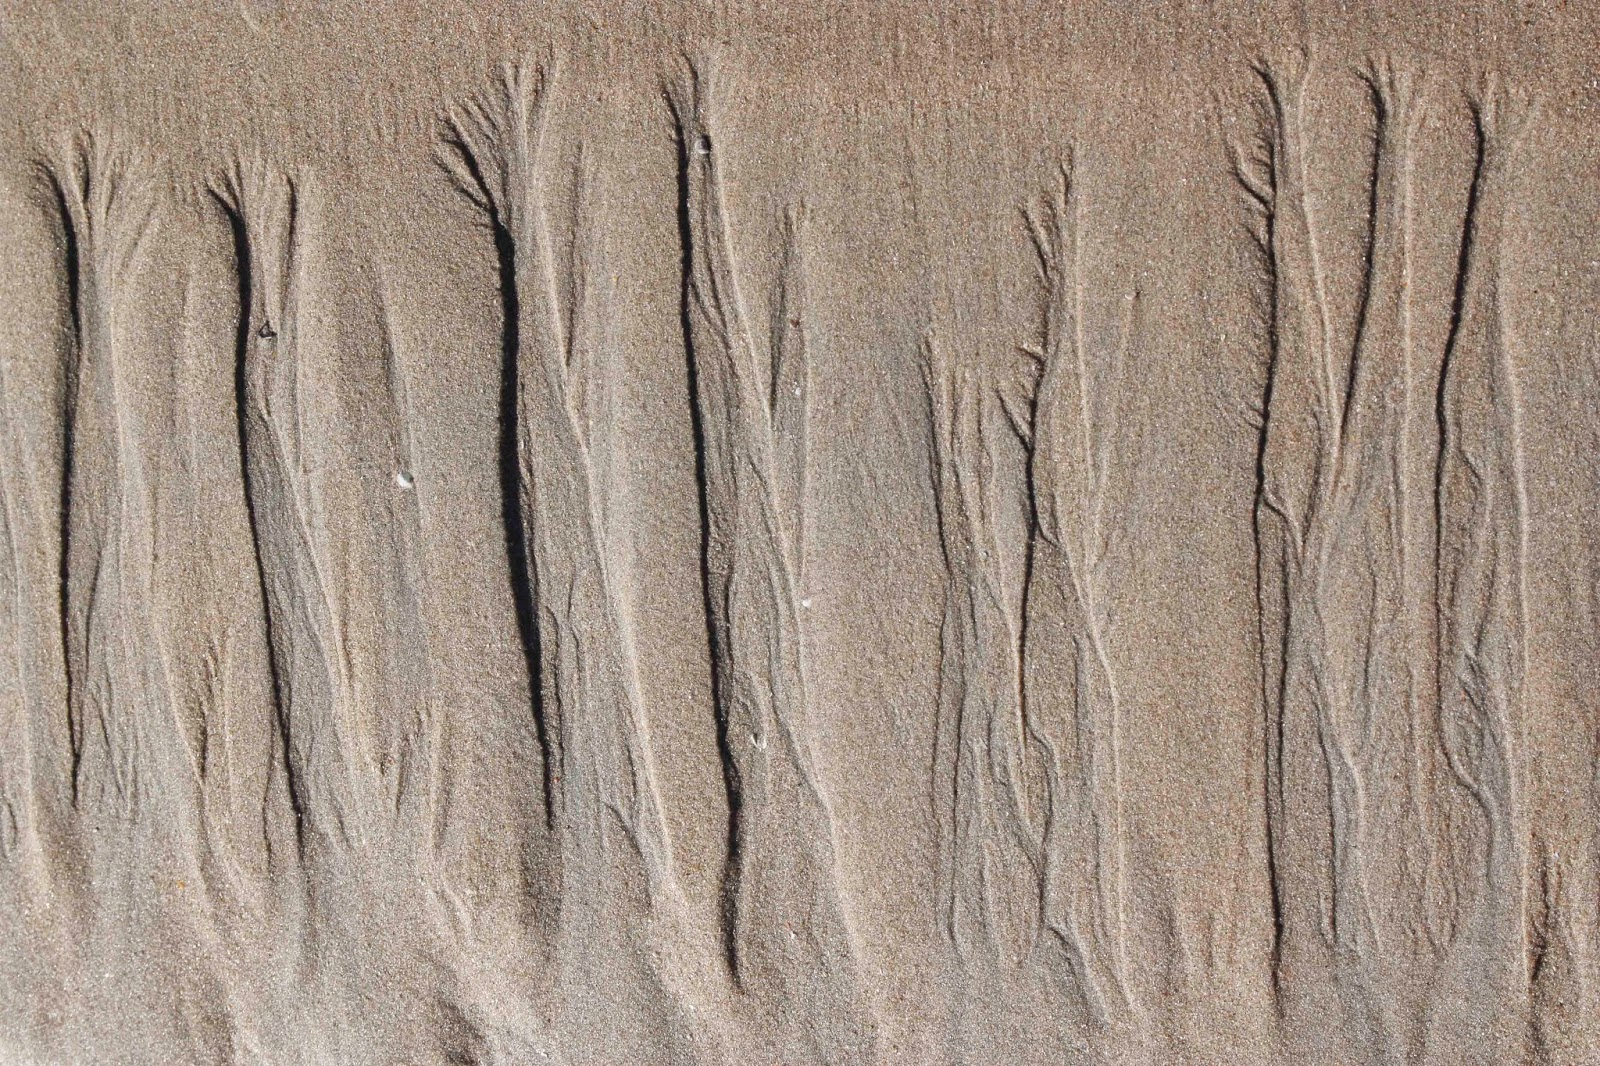 trees in sand